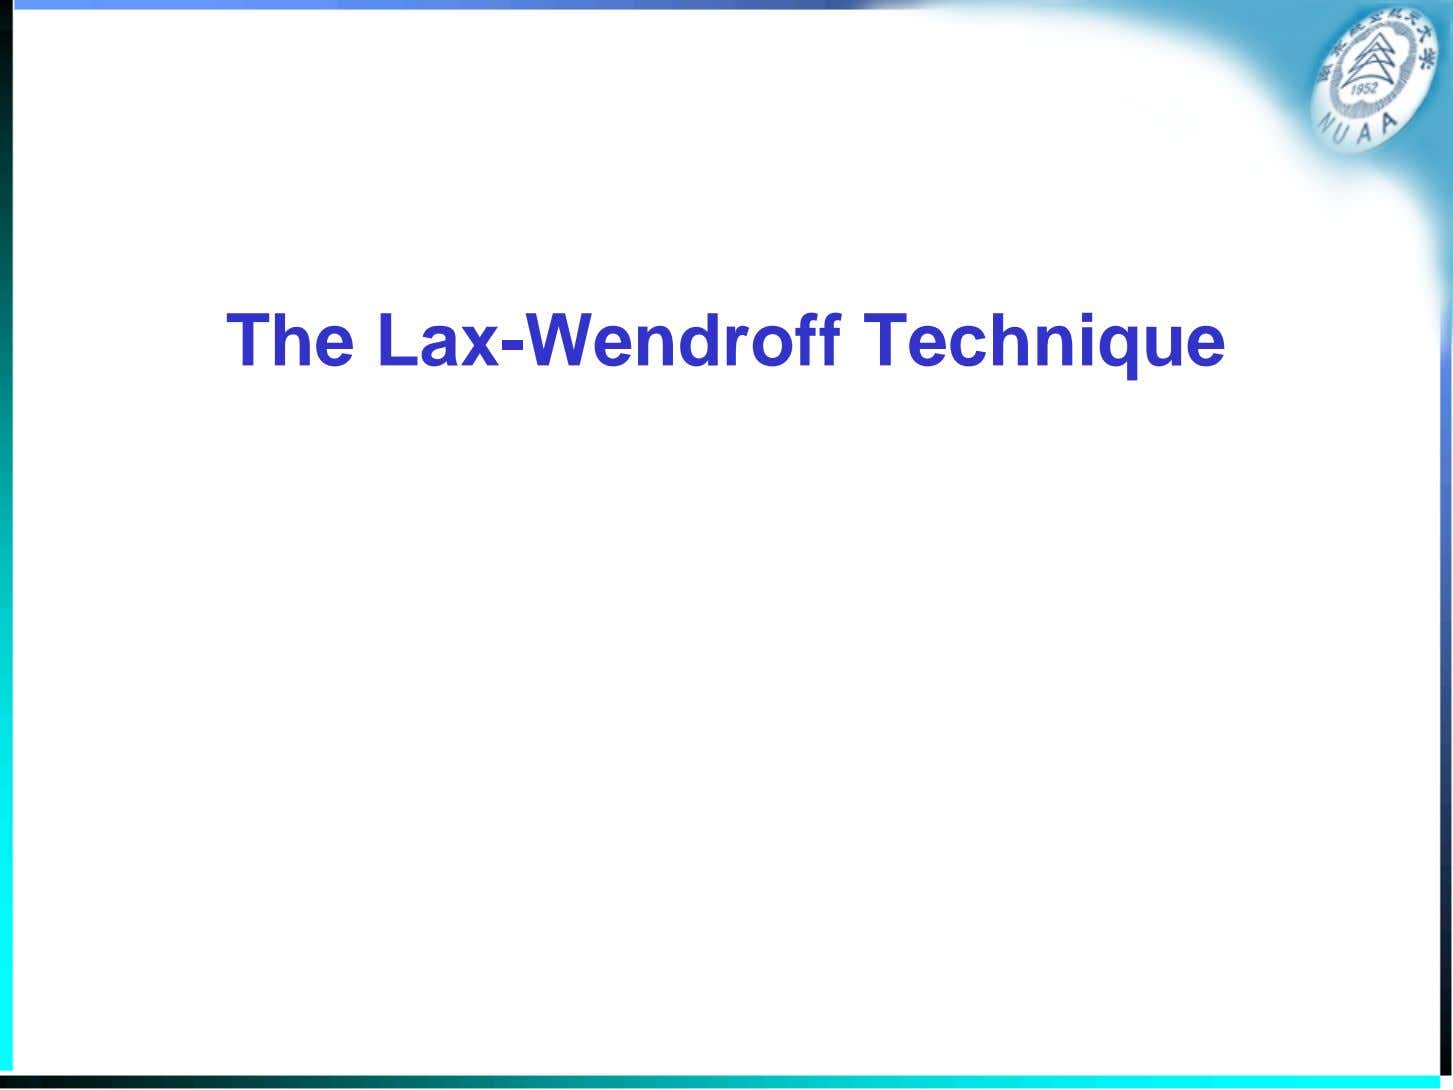 The Lax-Wendroff Technique